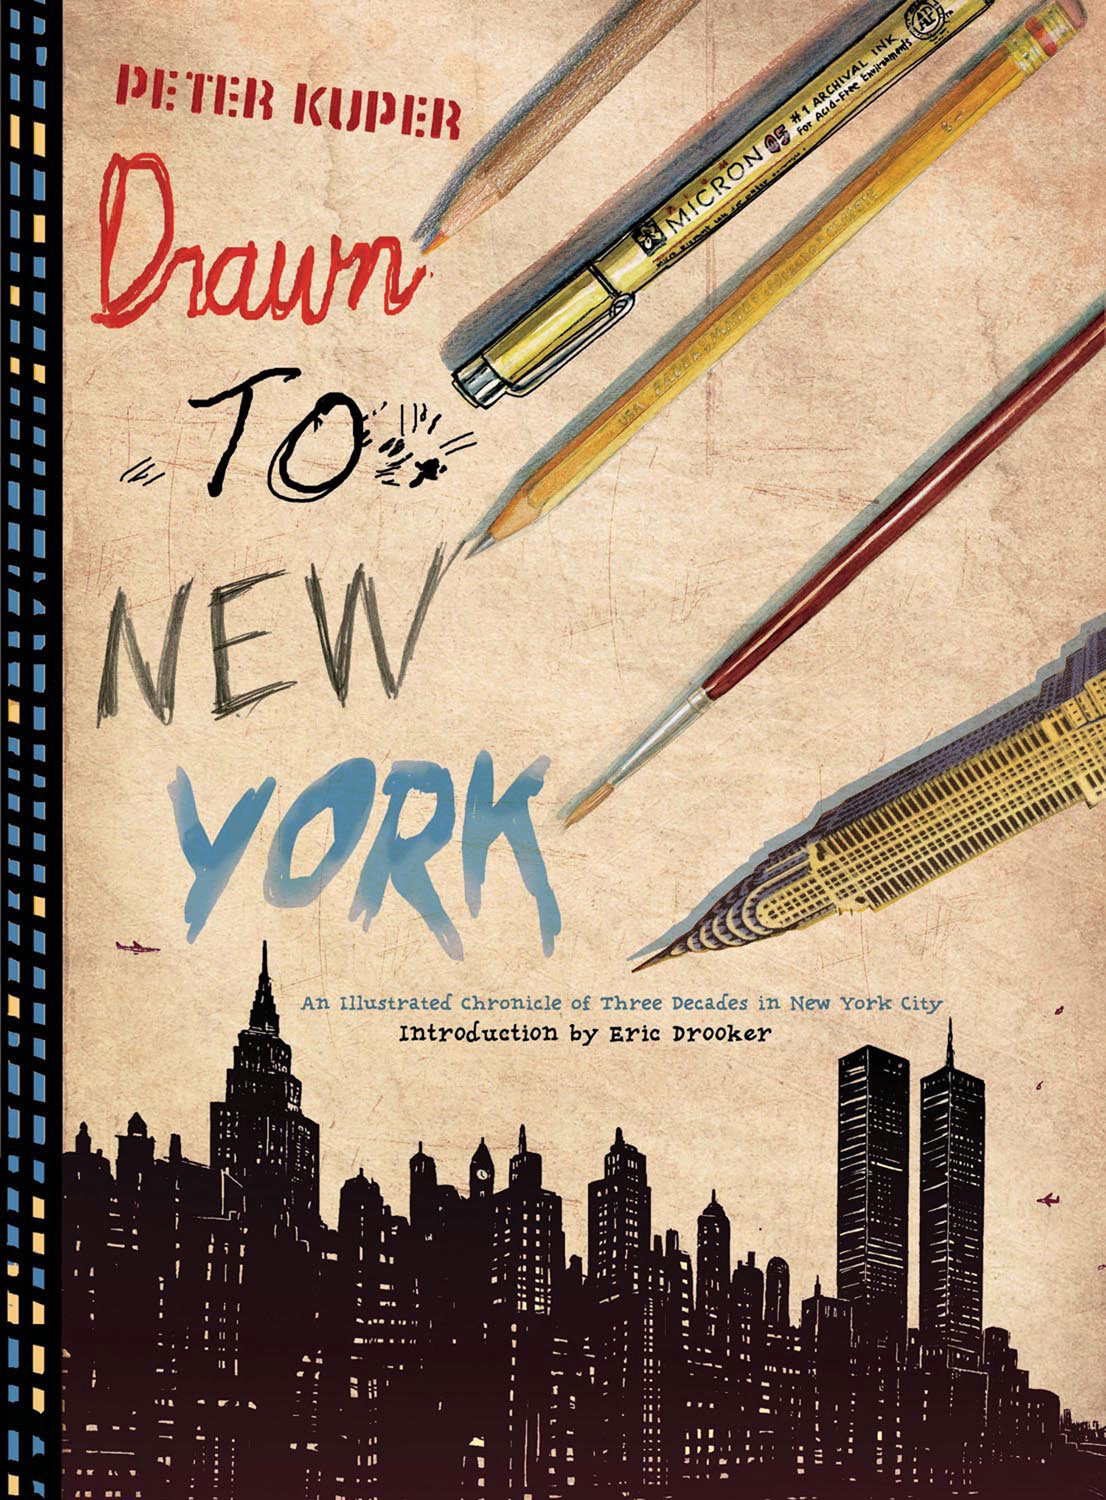 Drawn to New York By: Peter Kuper